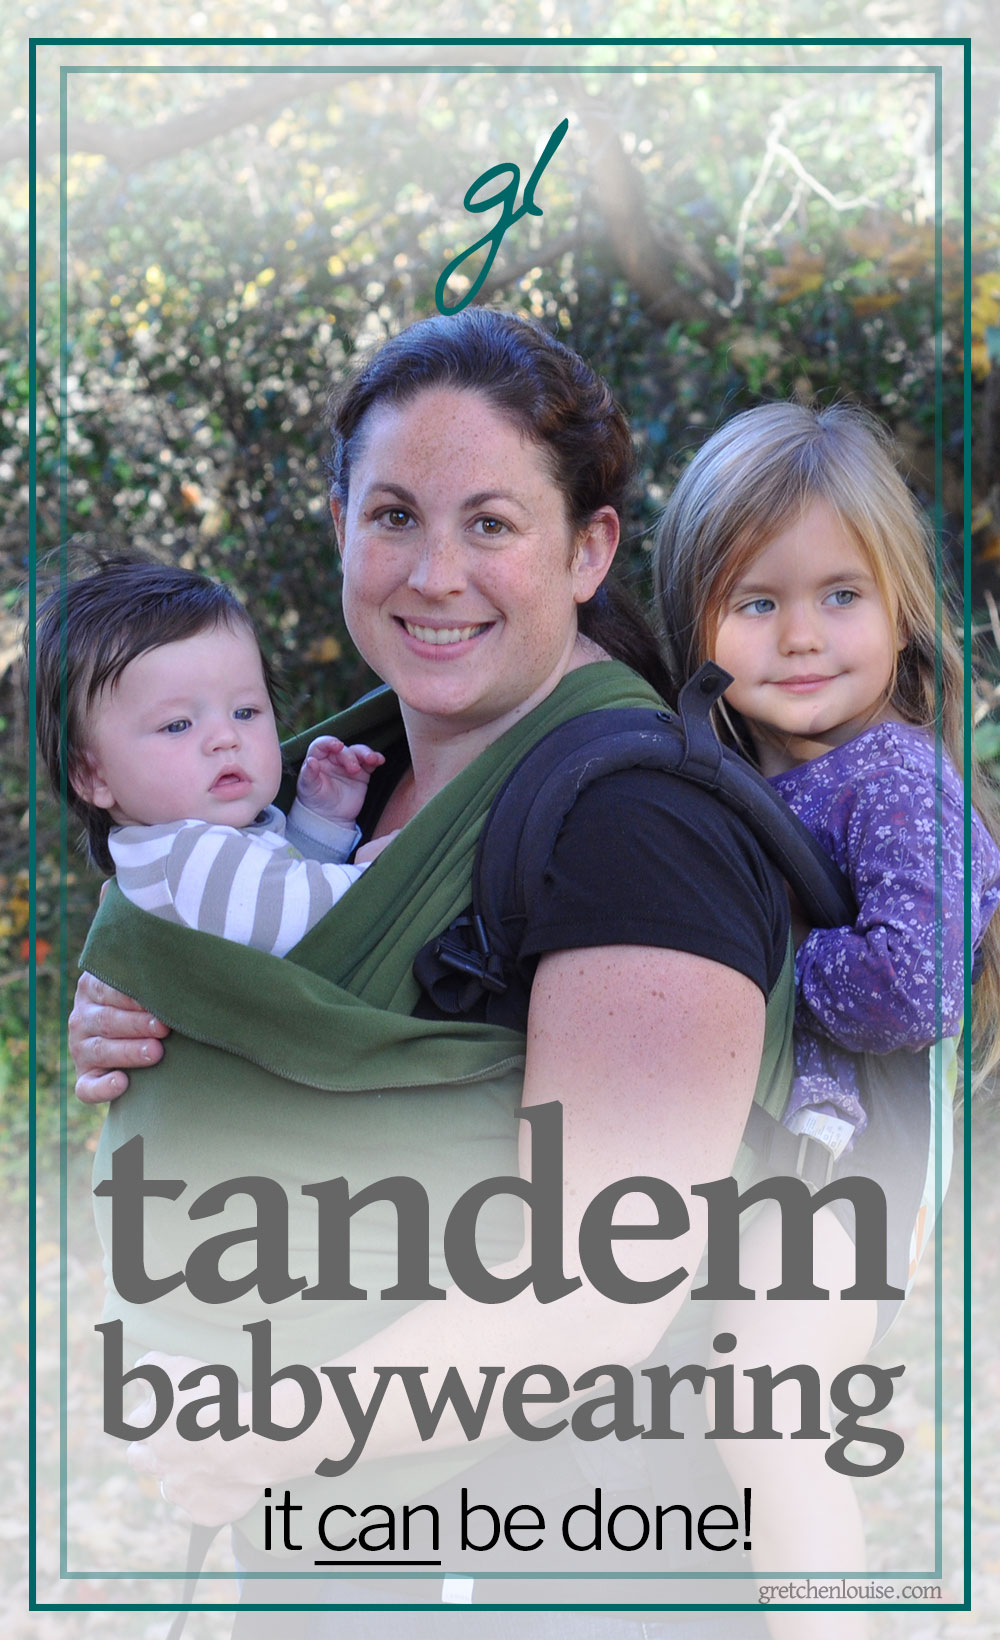 Necessity is often the mother of invention, but for mothers, invention becomes a necessity. It is that necessity that took me down the path of tandem babywearing with multiples.